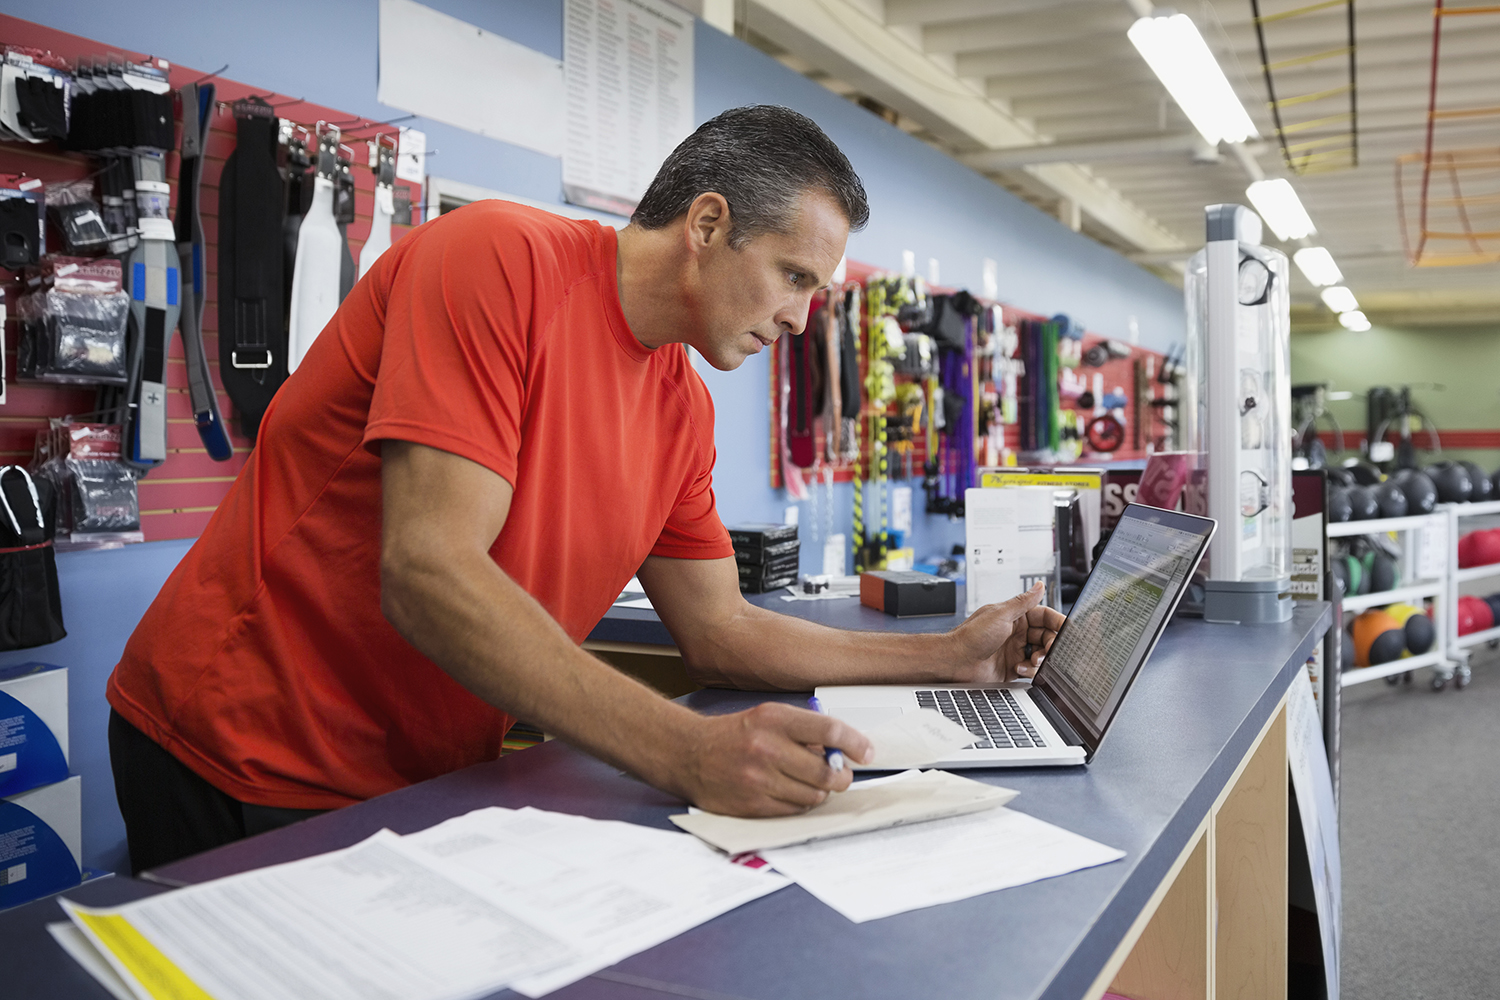 Business owner working at laptop at counter in home gym equipment store